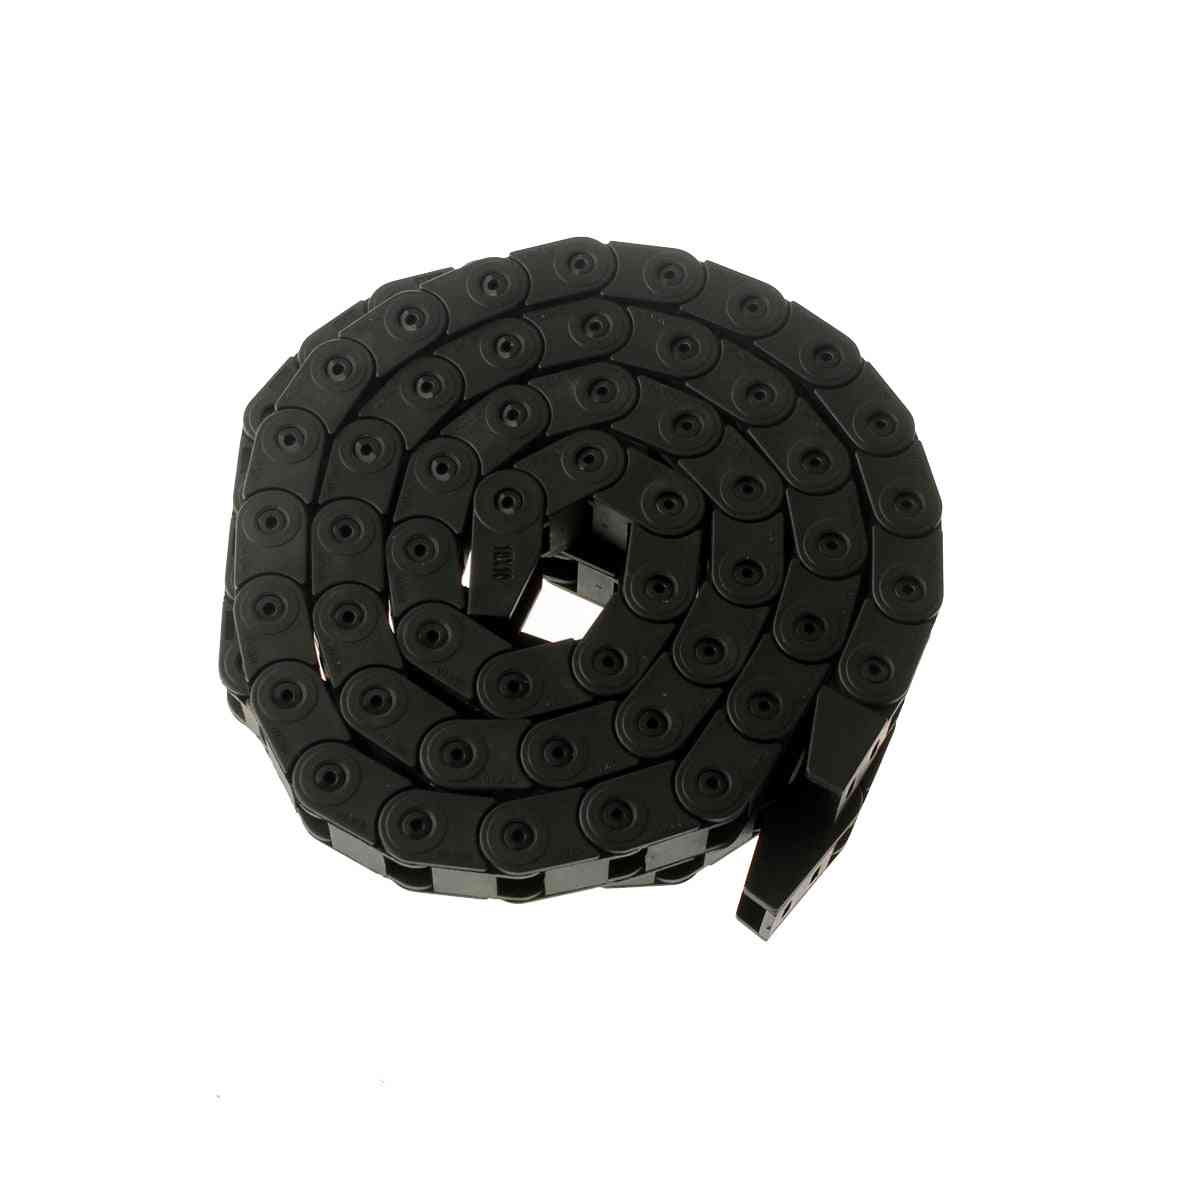 Cable Drag Chain - Wire Carrier For Cnc Router Machine & 3d Printer